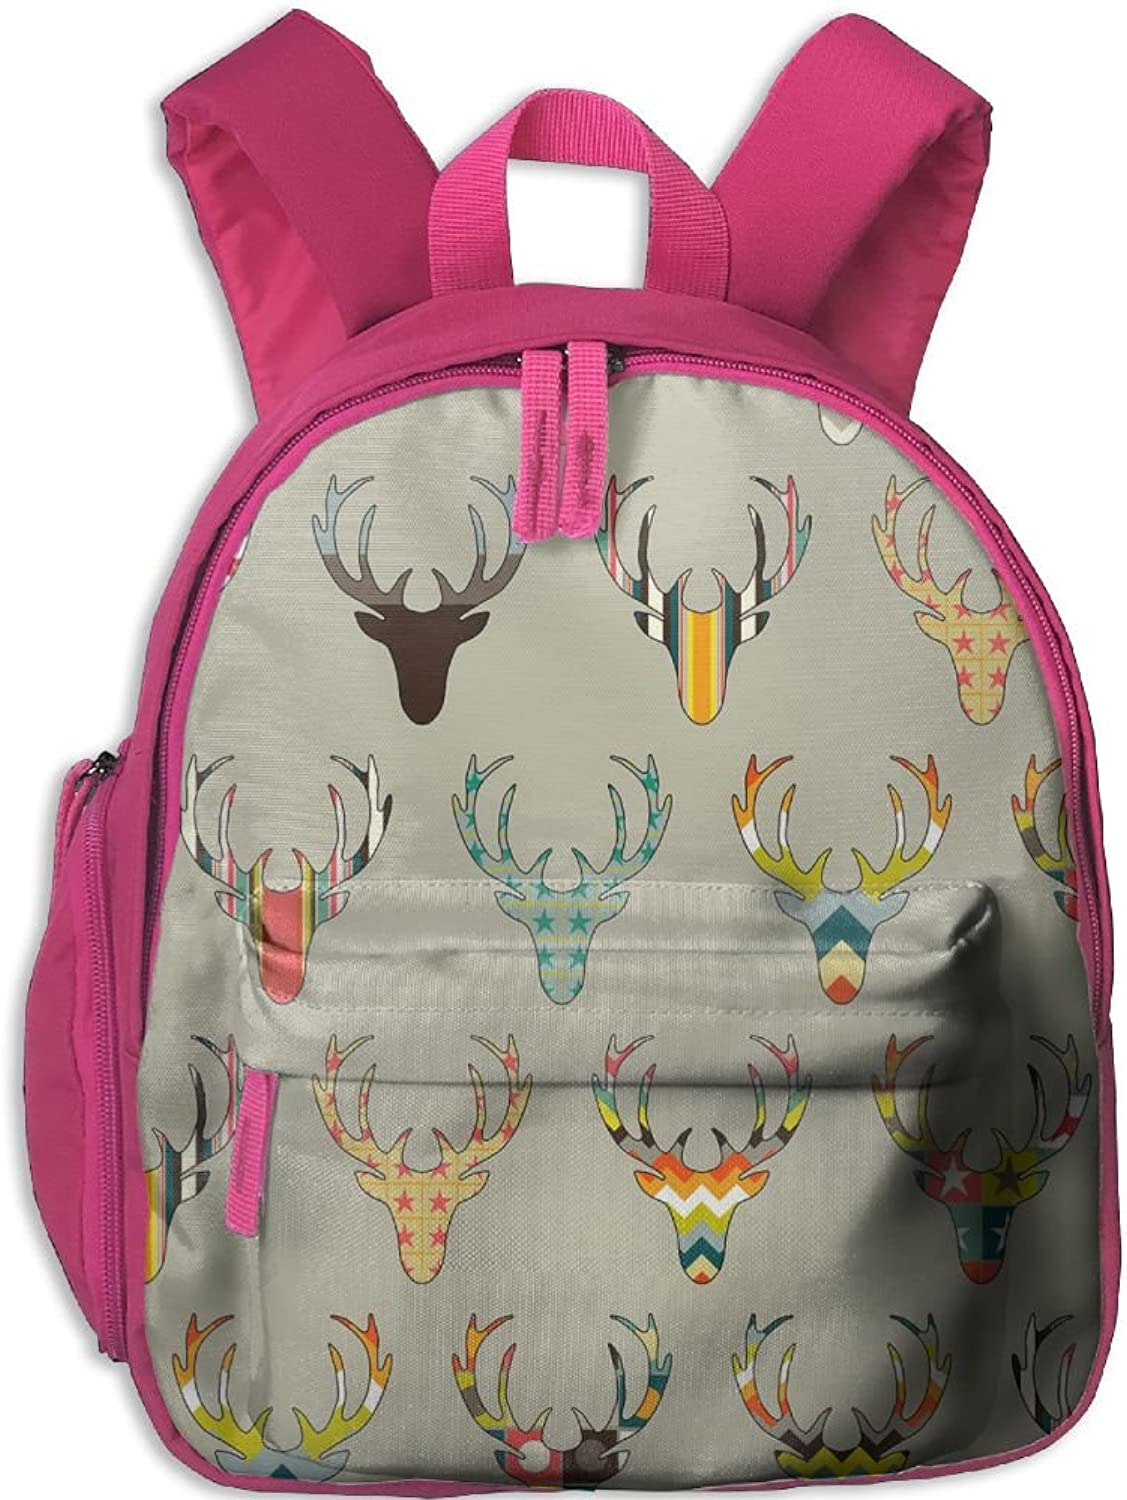 School Bag Woodland Deer Head(2611) With Durable Travel Camping Backpack For Boys And Girls